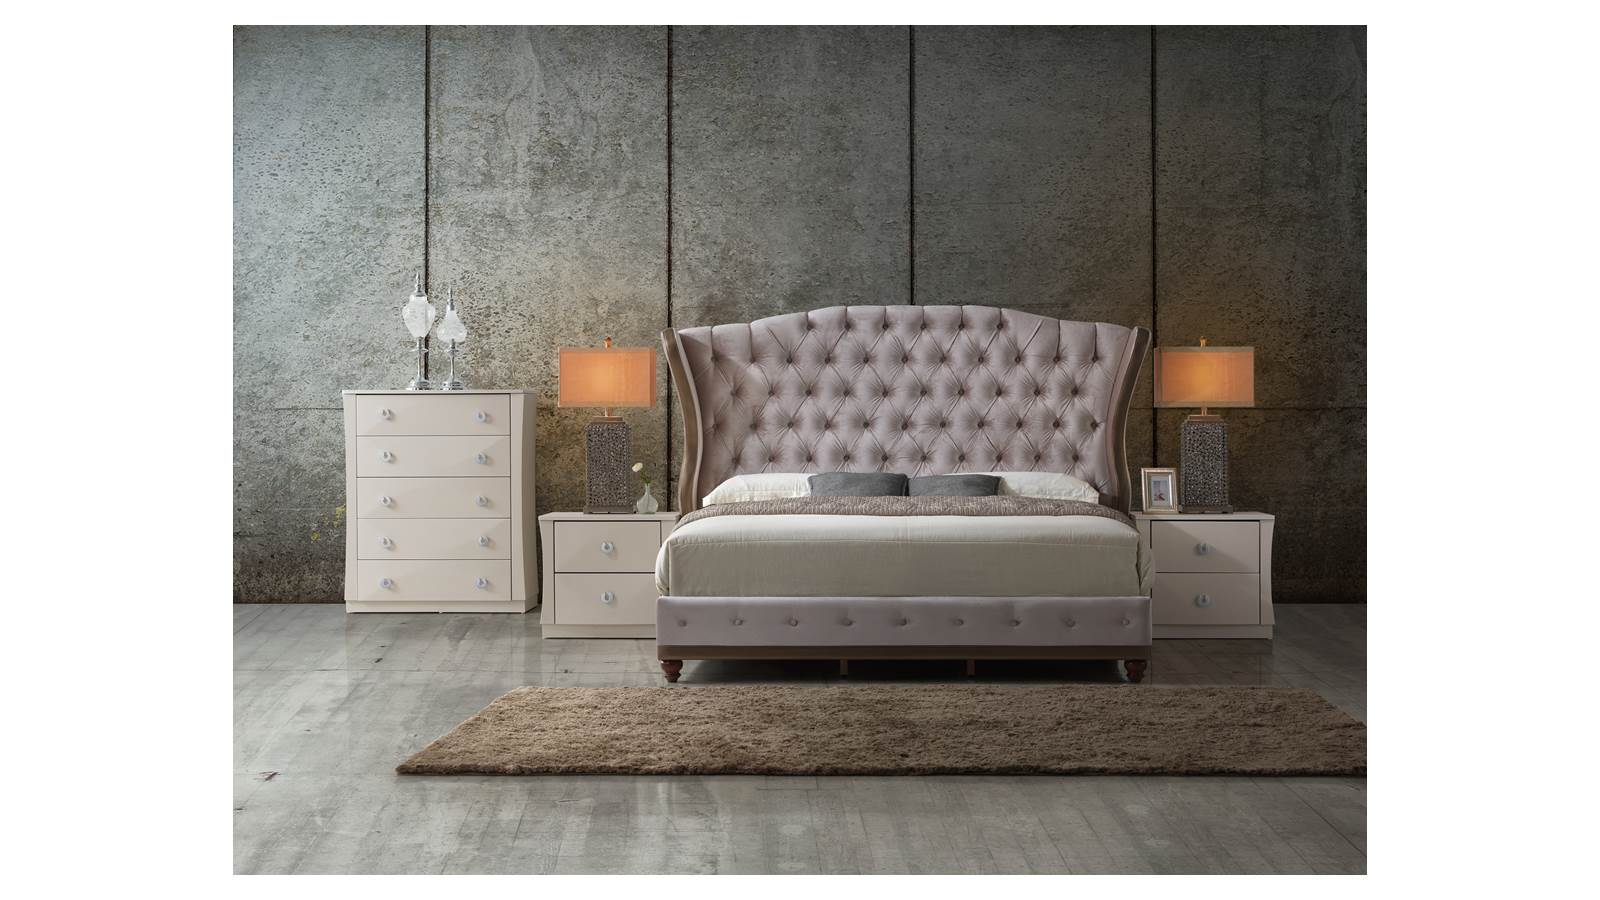 Harvey Norman Side Tables Home Beds Manchester Bedroom Beds Suites Limbo Dressing Table With Stool